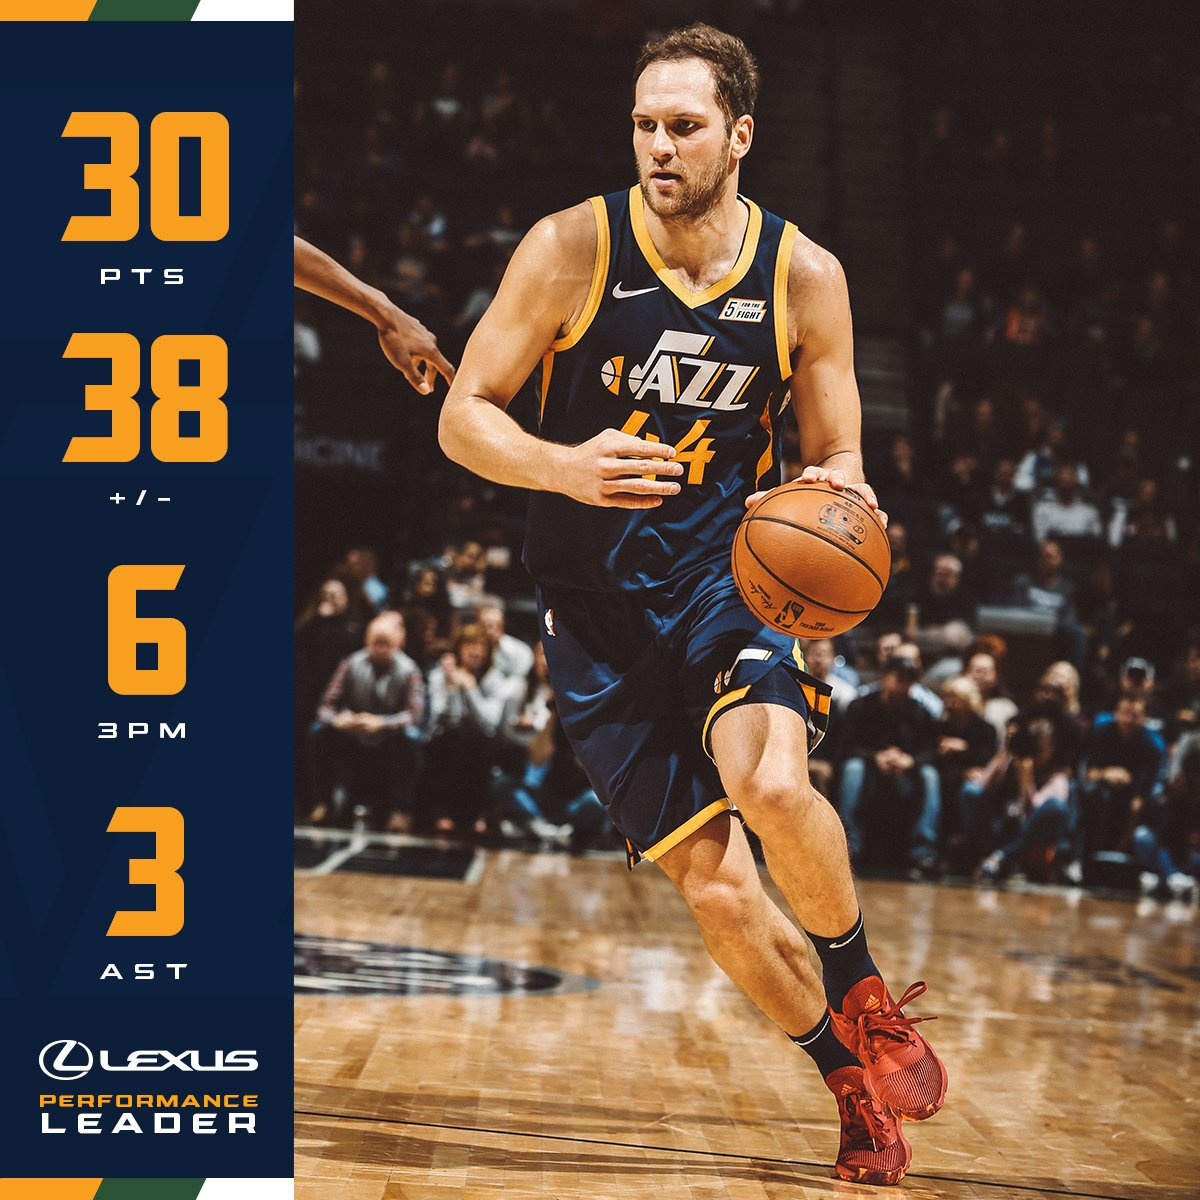 Bojan was a +38 in his 36 minutes tonight—the highest +/- in his career 📊  #PerformanceLeader   @Lexus